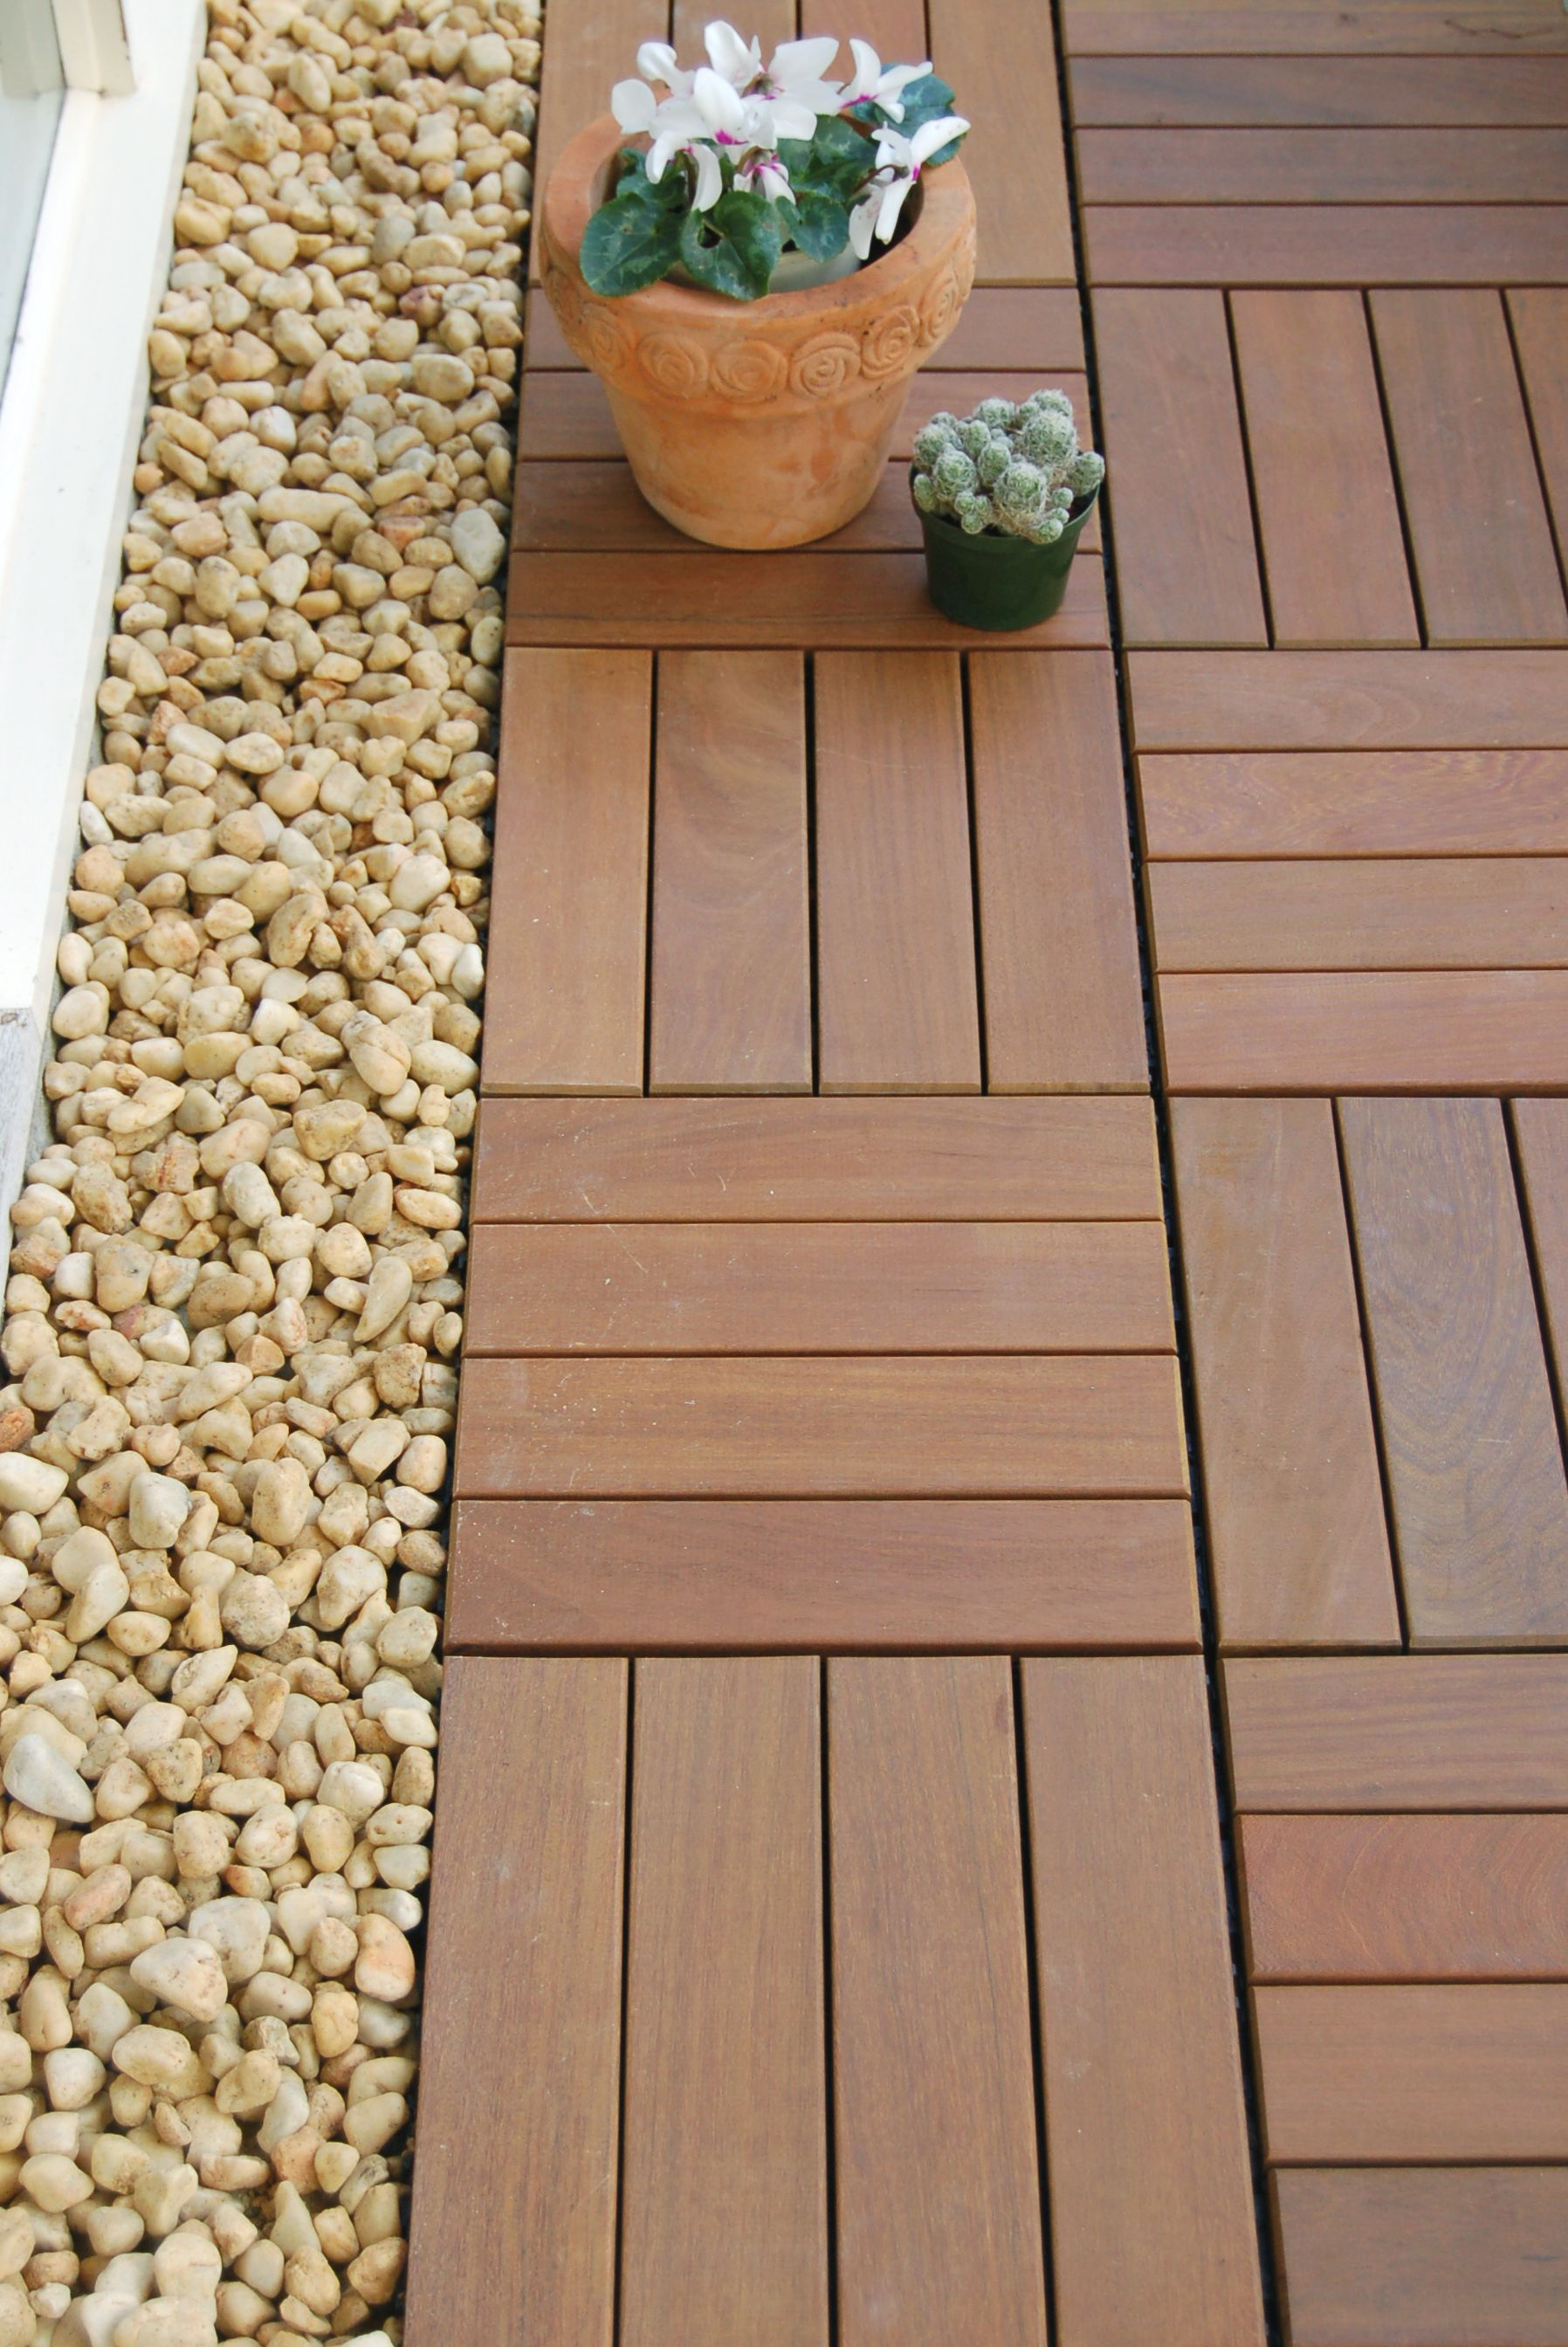 A row of pebbles saves cutting any patio tiles to fit a gap